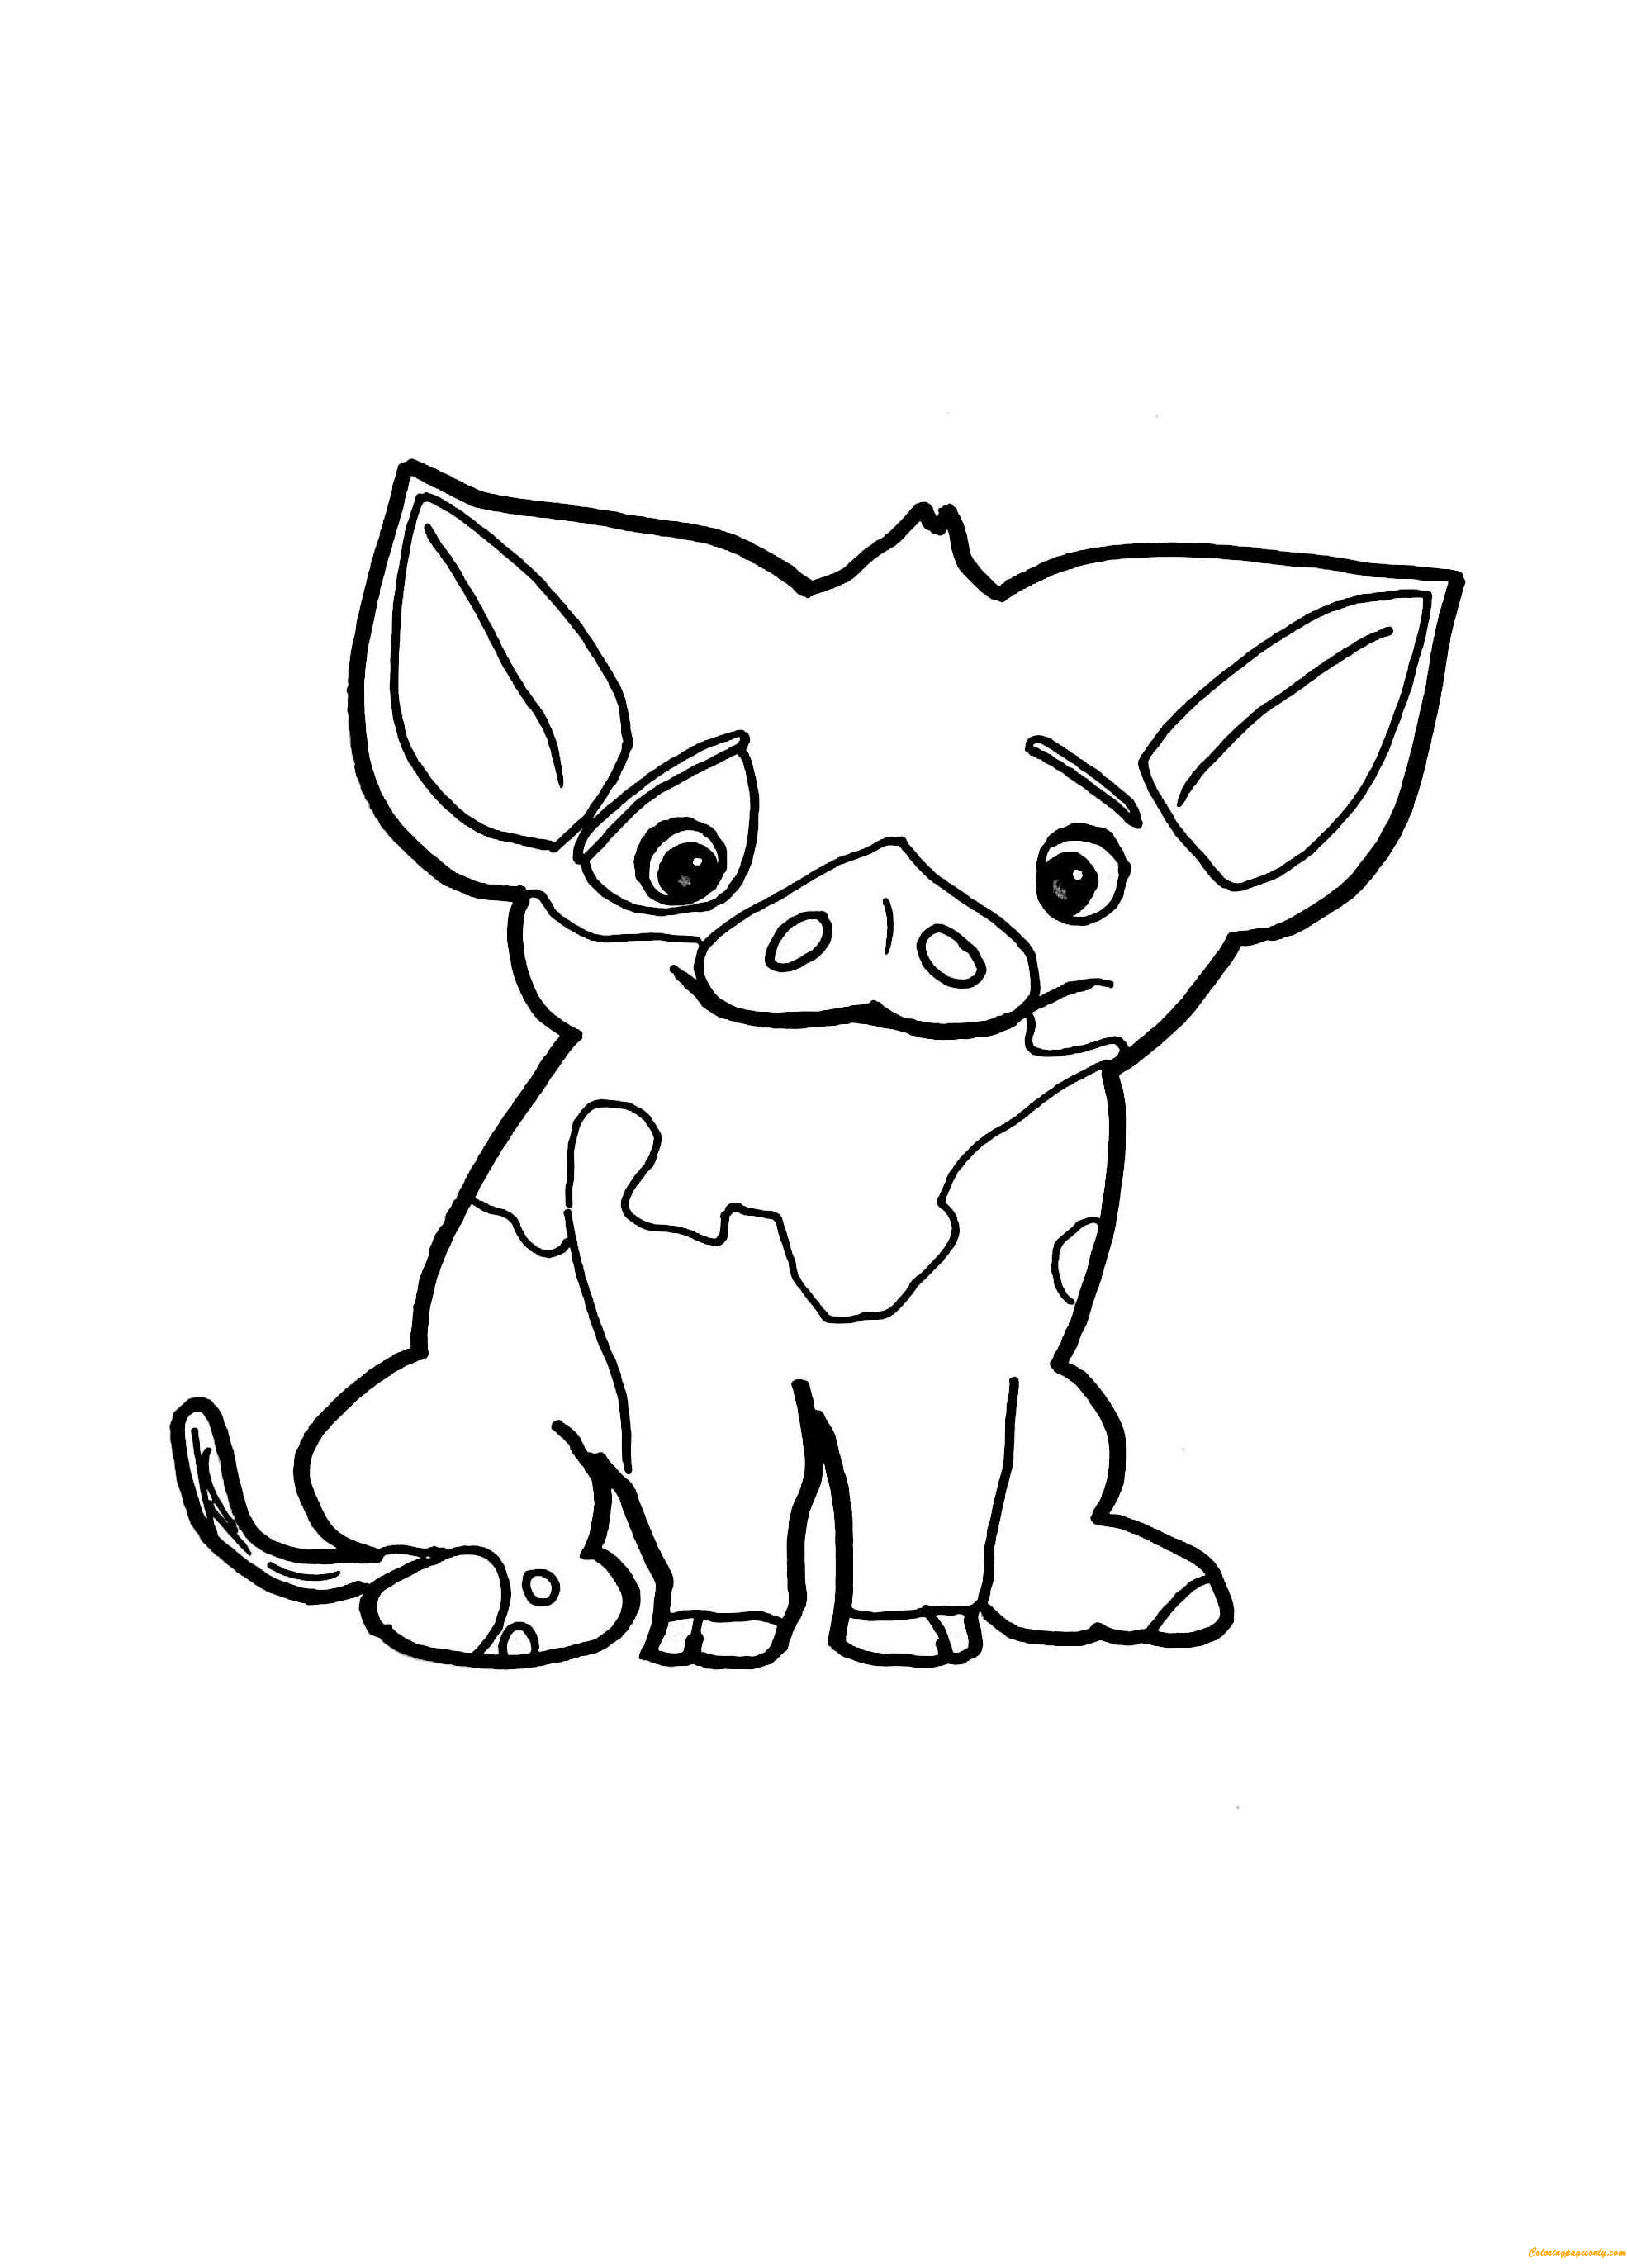 Drawing Coloring Pages Pigs 75 barbie three musketeers games ...